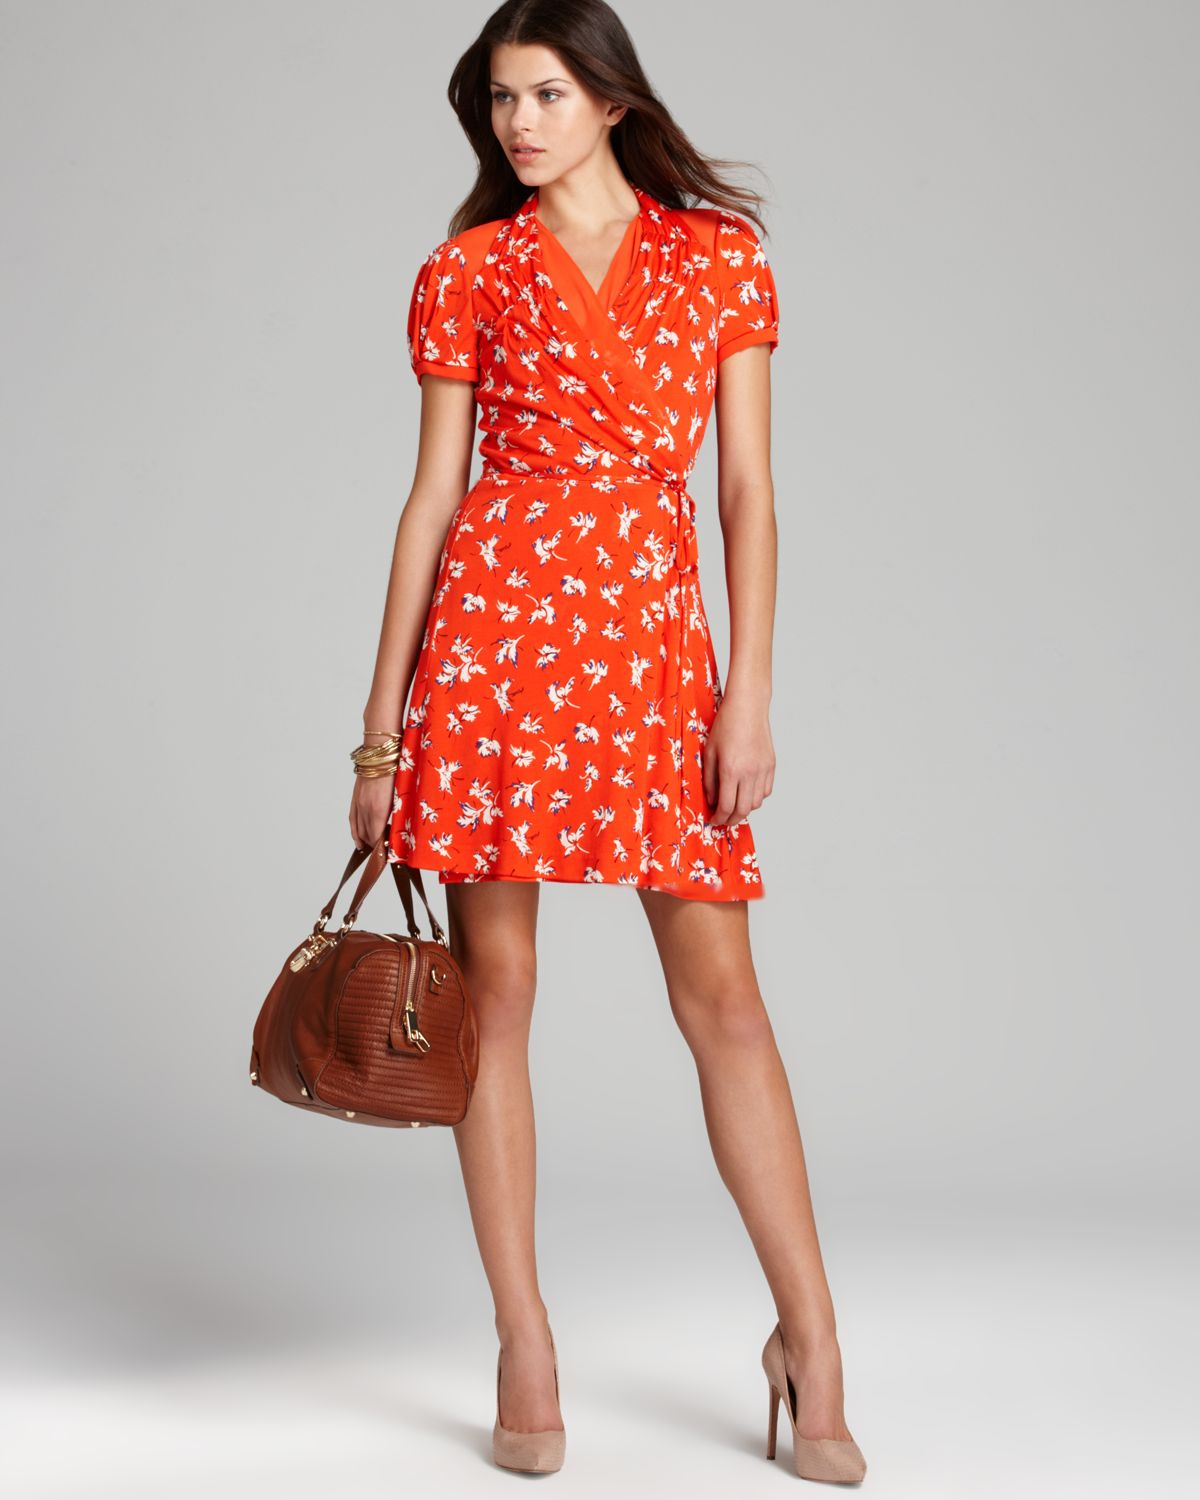 e032338068 Lyst - Juicy Couture Dress Feathered Iris in Orange